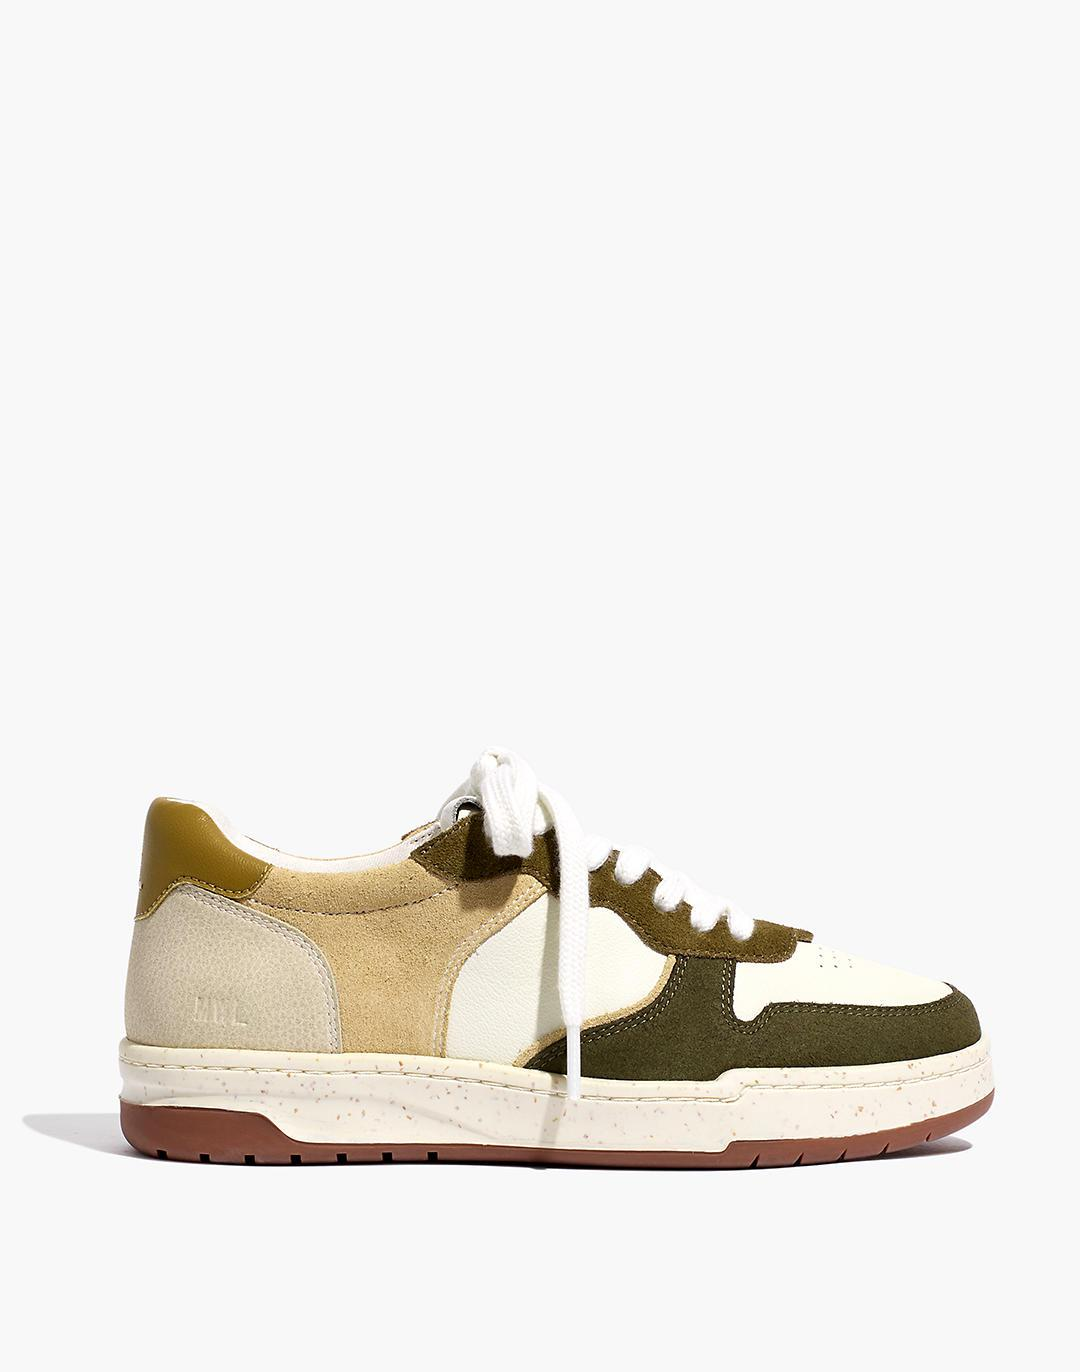 Court Sneakers in Colorblock Leather and Suede 1